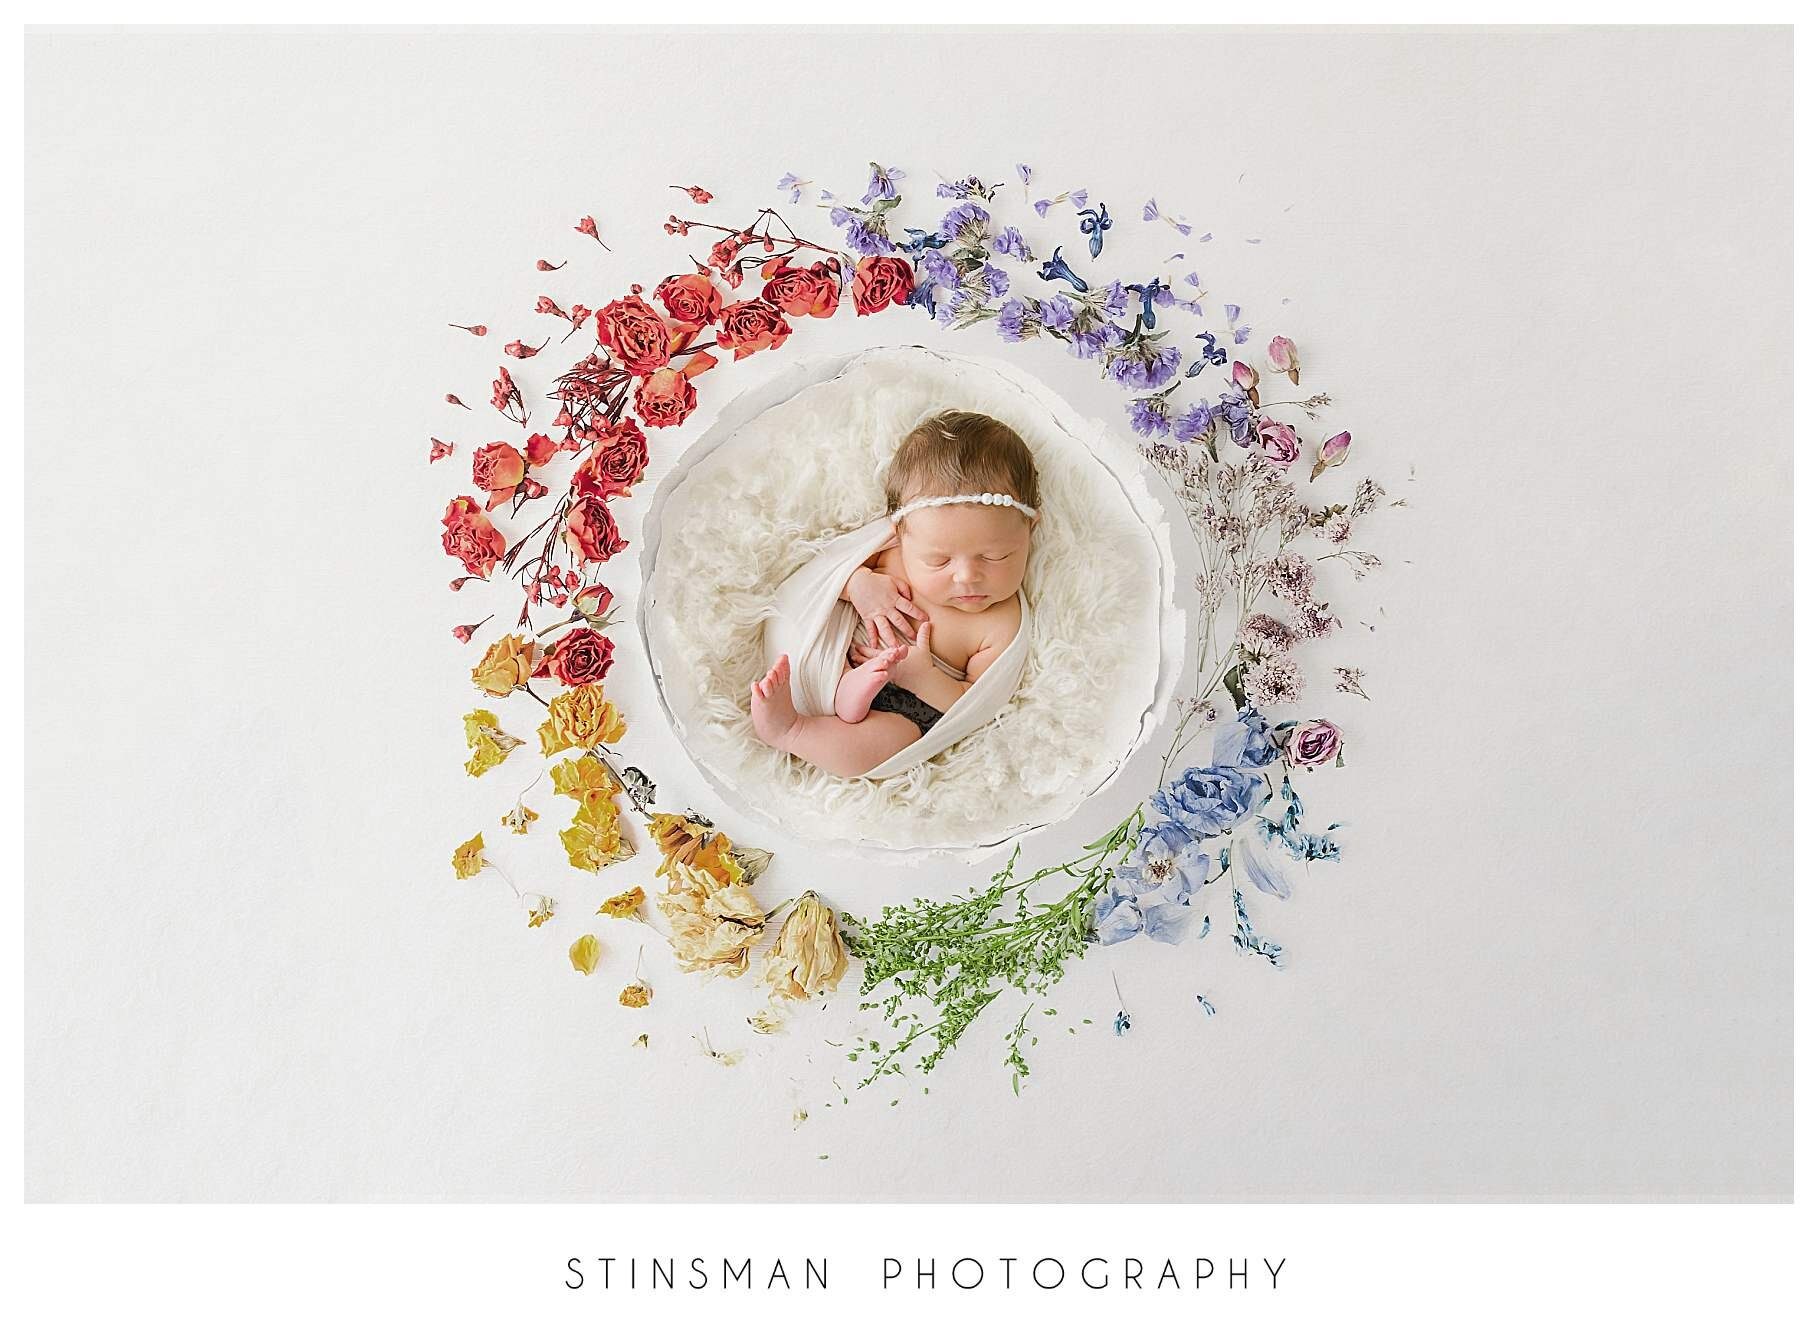 rainbow baby with flowers digital backdrop